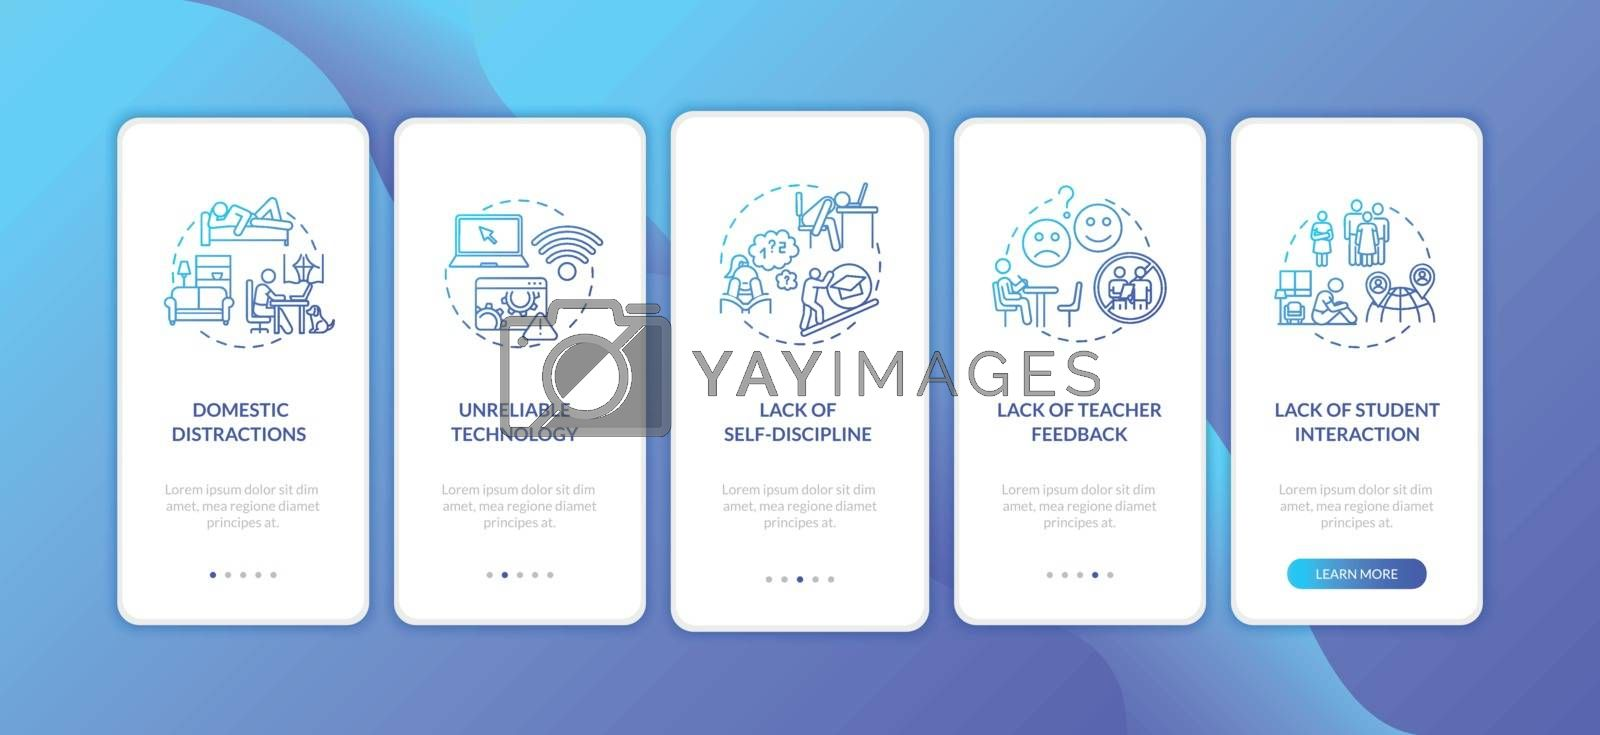 Distance learning cons onboarding mobile app page screen with concepts. Lack of self discipline. E learning walkthrough 5 steps graphic instructions. UI vector template with RGB color illustrations